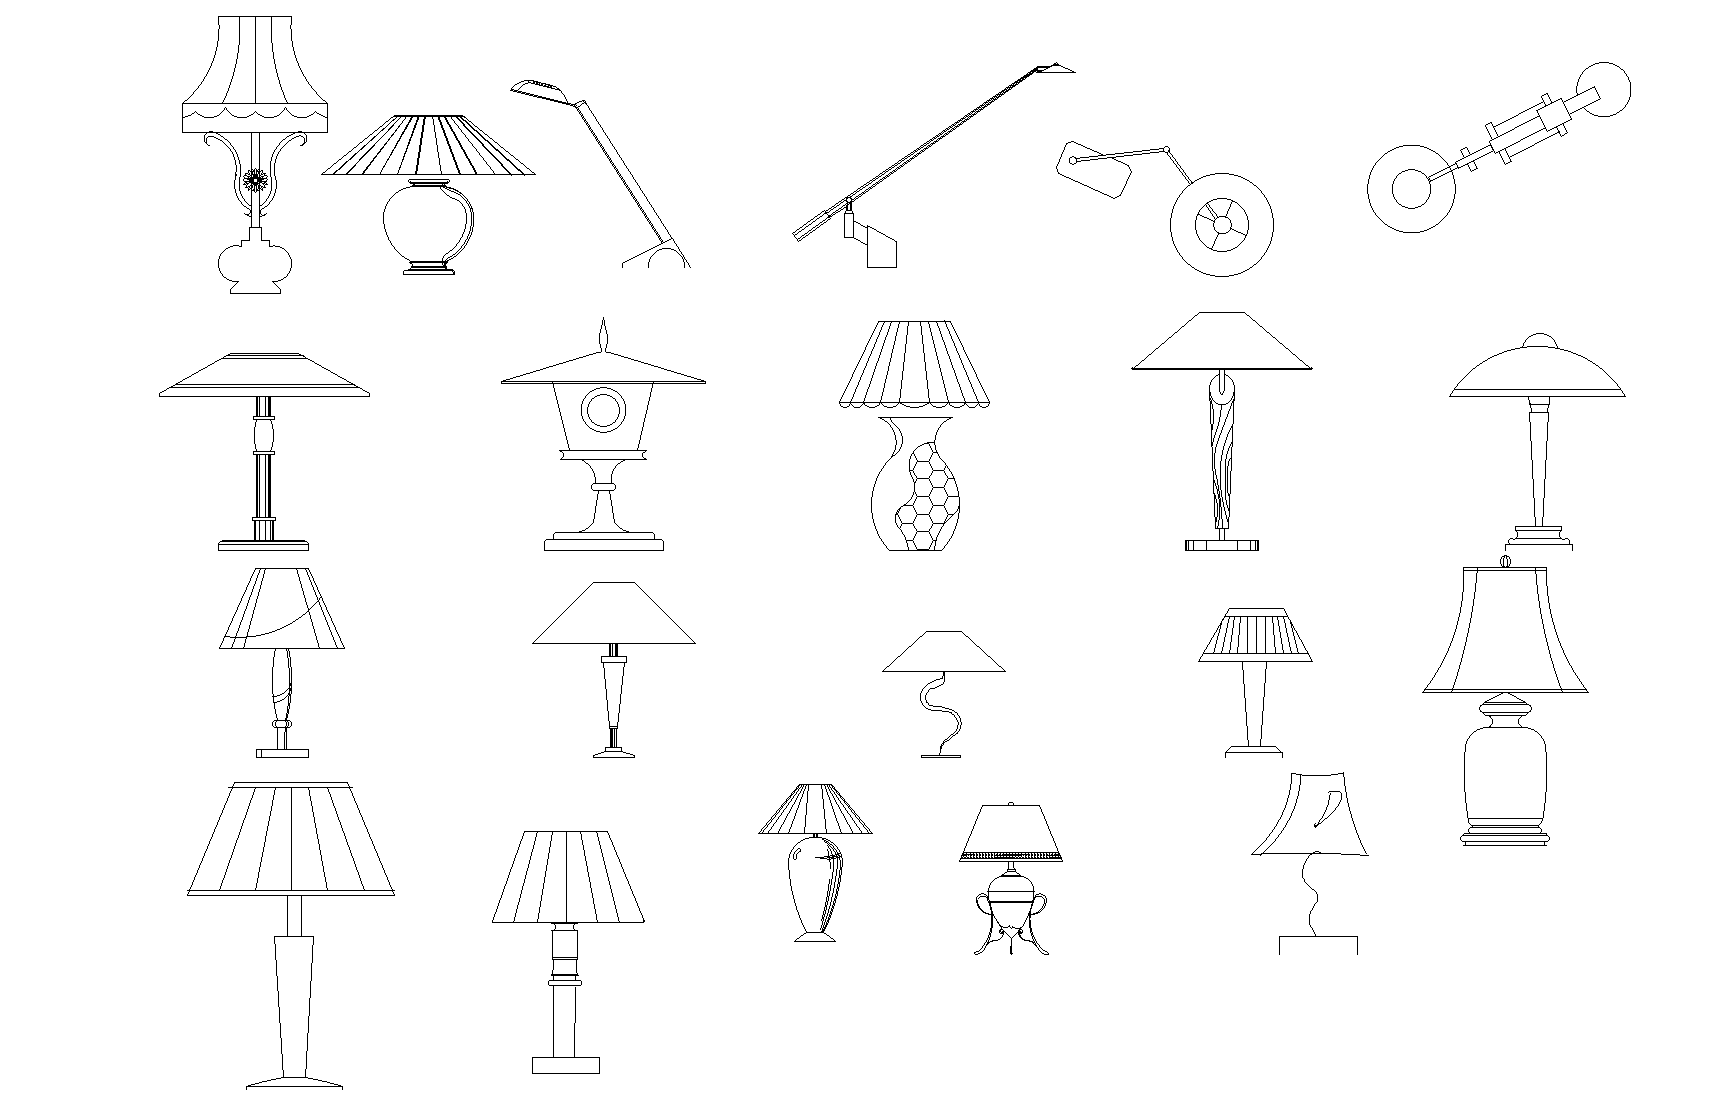 Plan of table lamps detail dwg file.